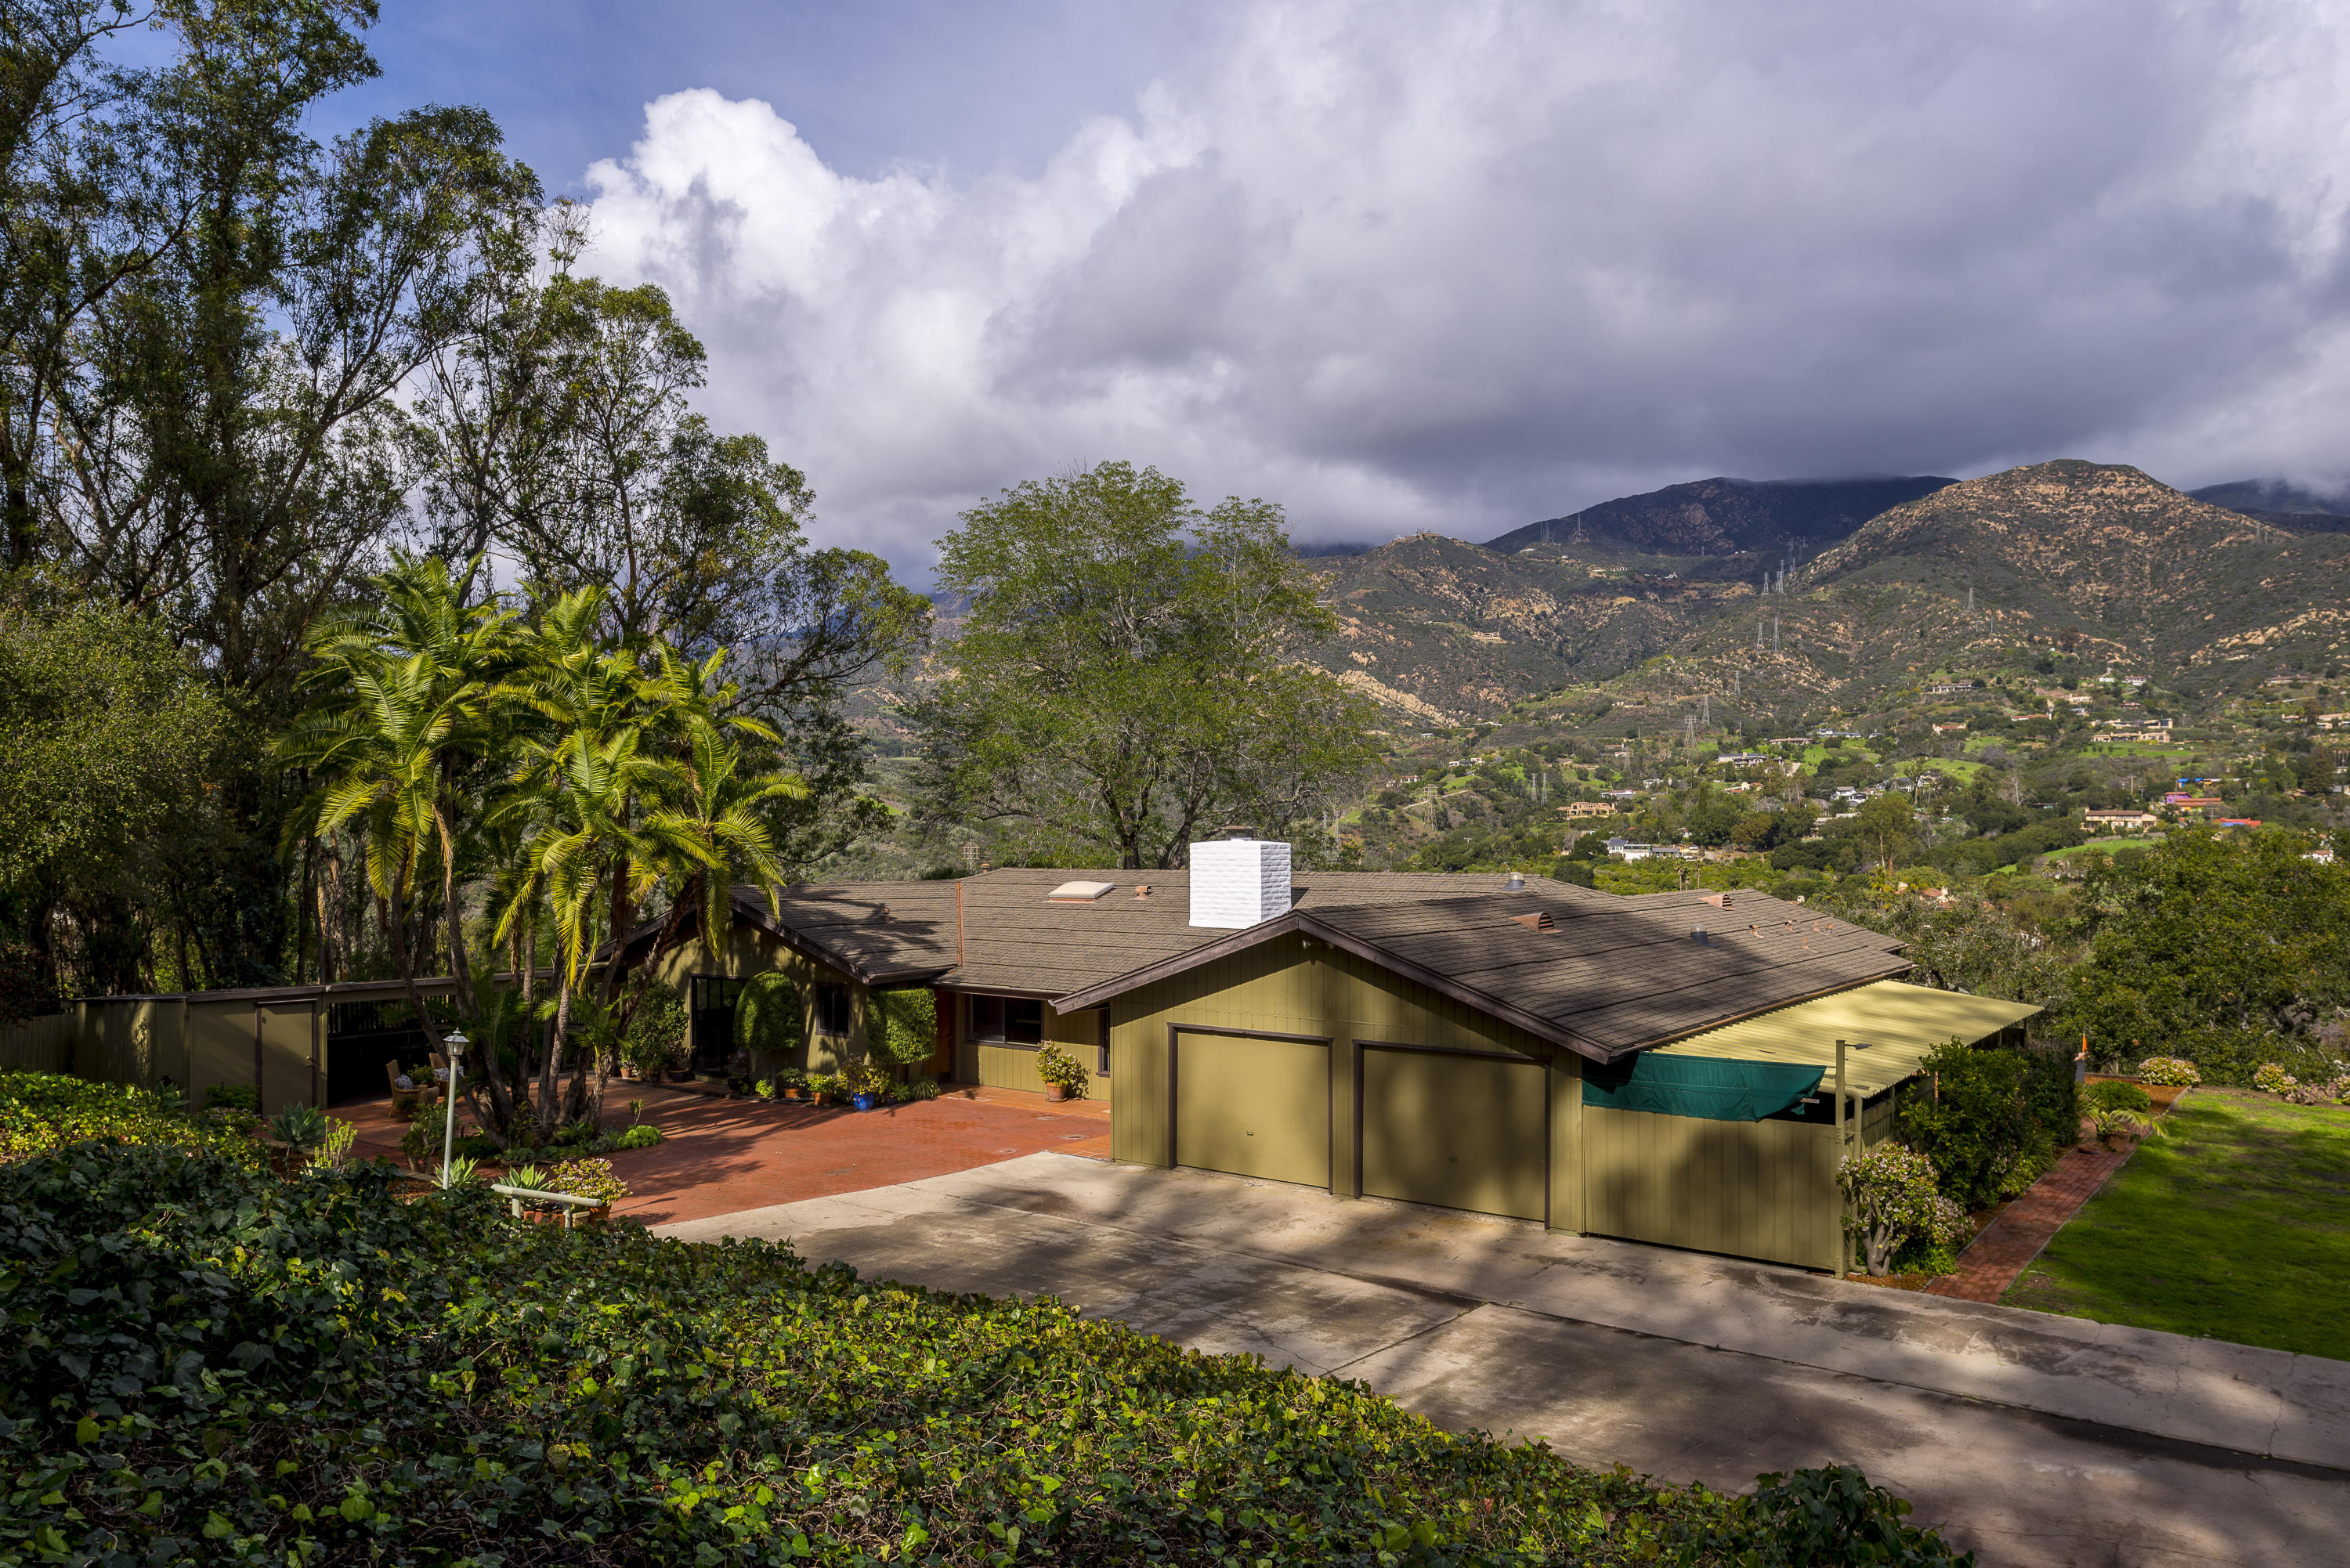 Property photo for 100 South Sierra Vista Rd Montecito, California 93108 - 17-331